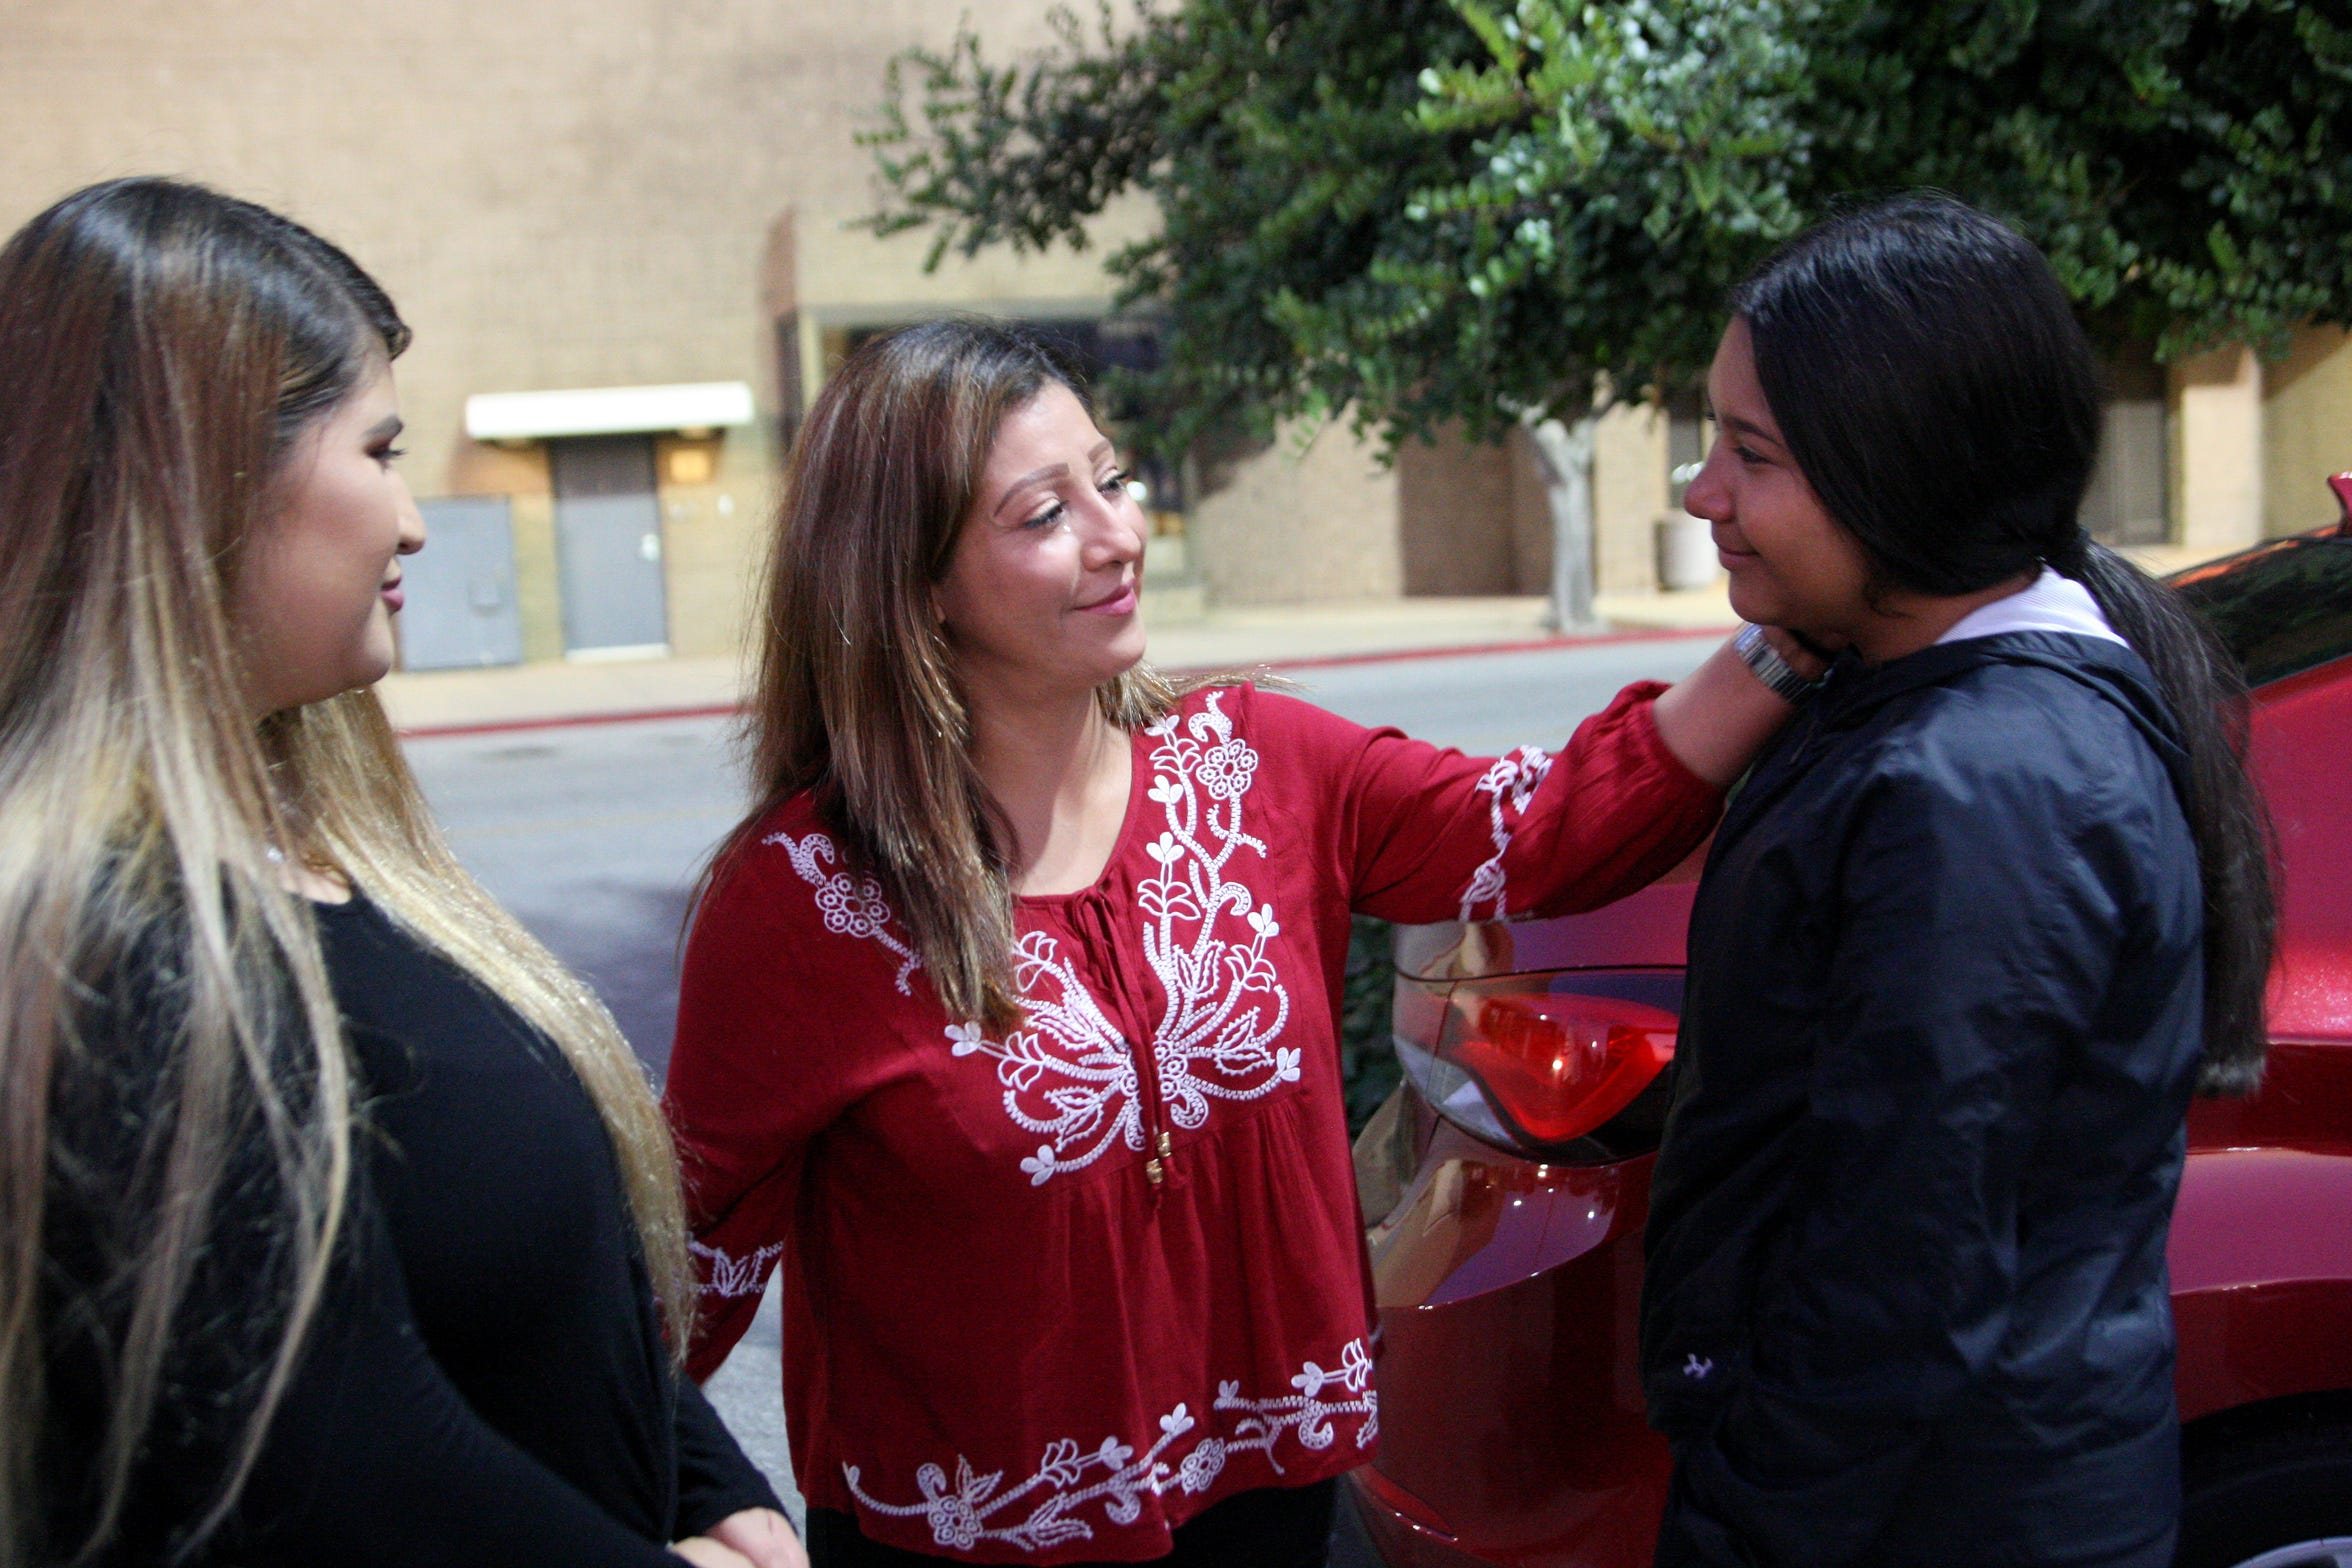 María Ramírez (middle) speaks with her daughters Lizbeth Espinoza Ramírez (left) and Betty Espinoza Ramírez (right) shortly before María and Betty left for a trip to Mexico. Lizbeth was unable to go due to work obligations.